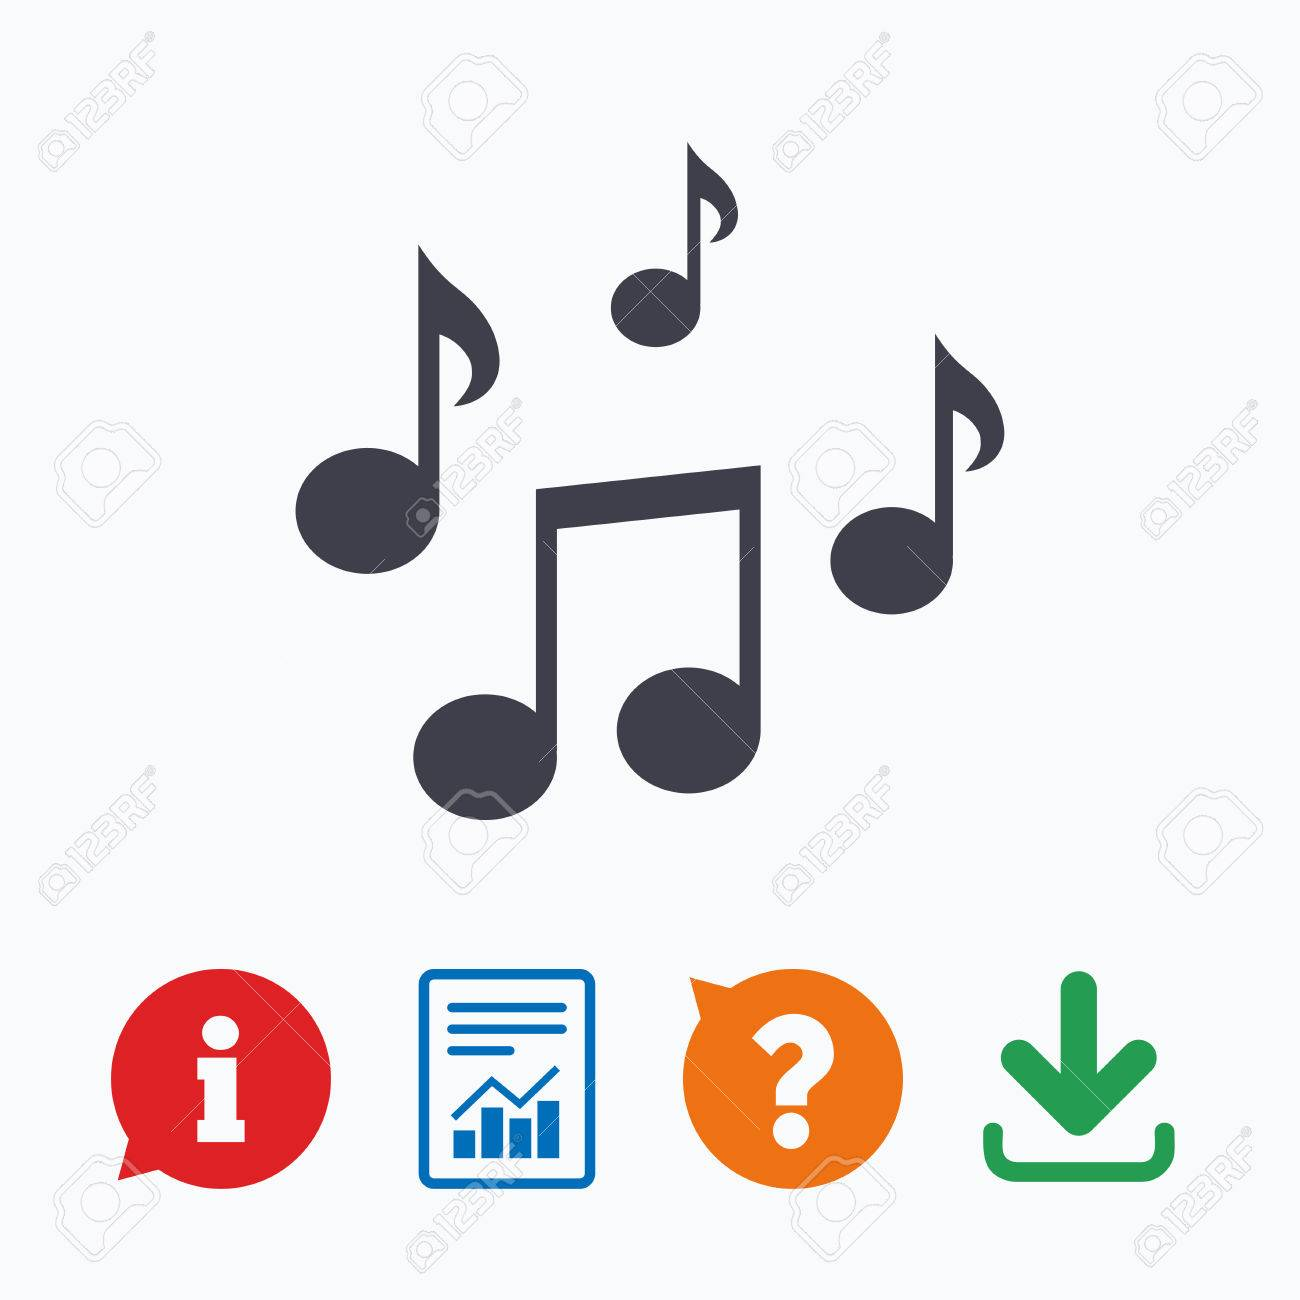 music notes sign icon musical symbol information think bubble rh 123rf com music notes vector art free download music notes heart shape vector free download